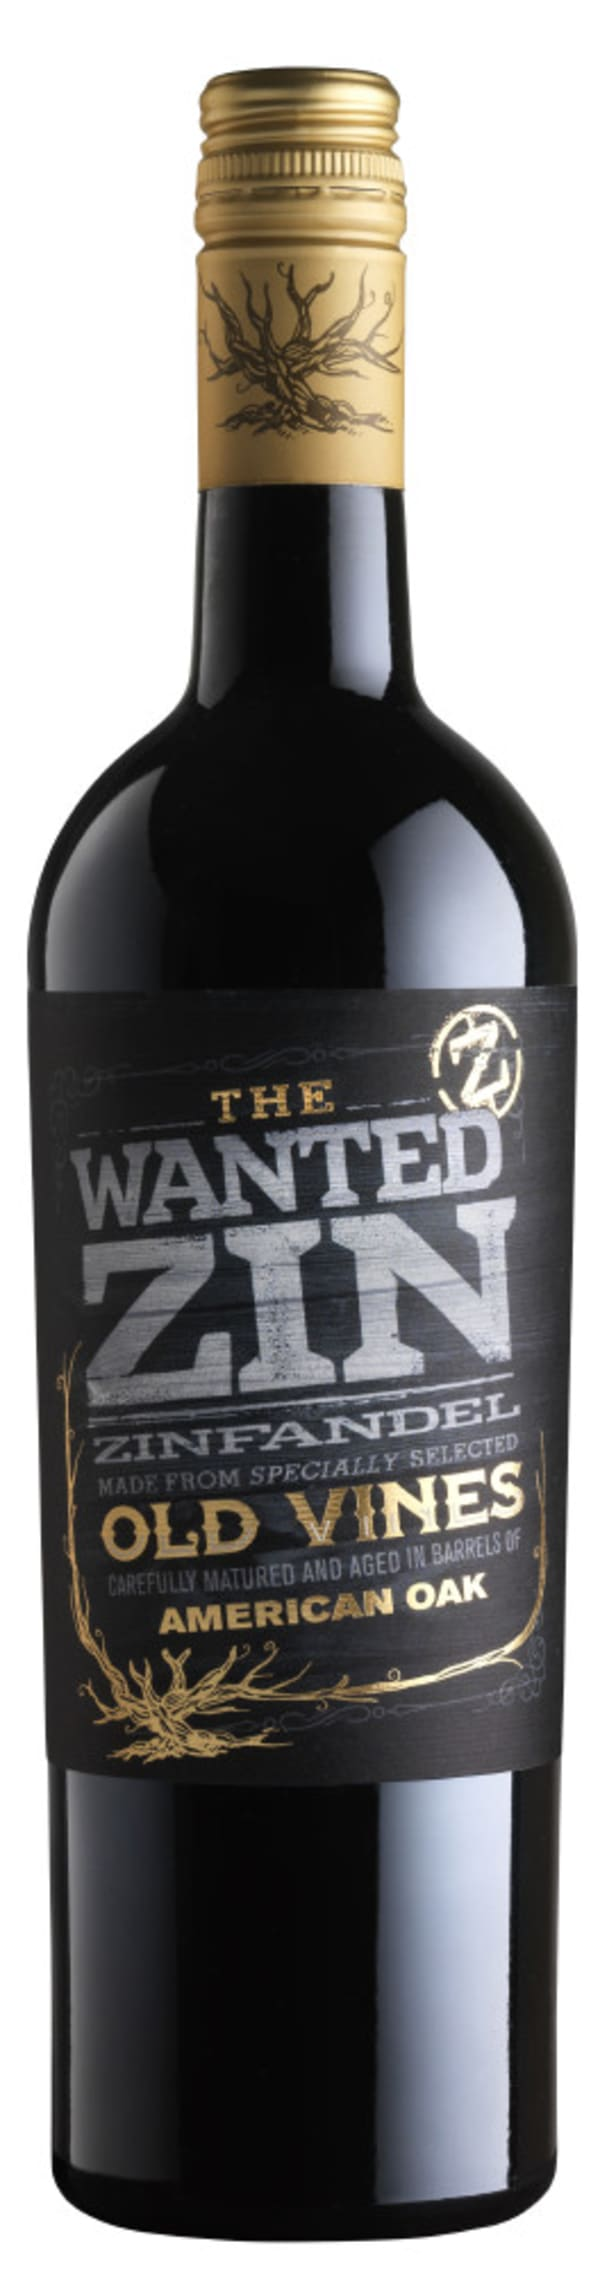 The Wanted Zin 2016